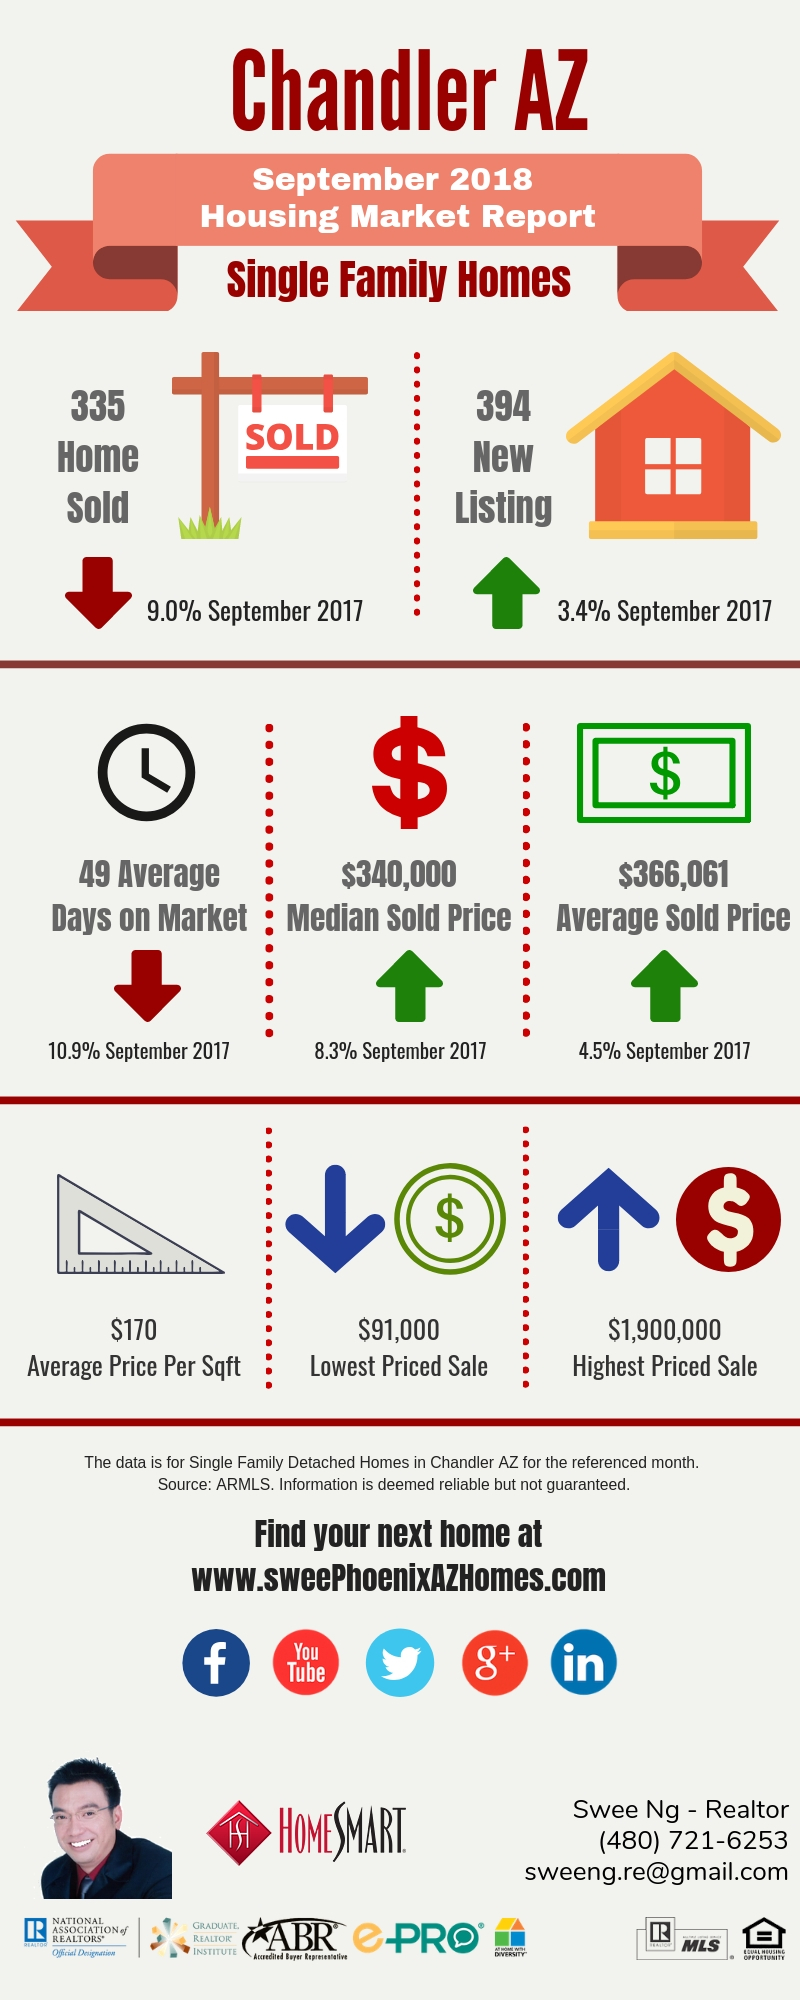 Chandler AZ Housing Market Update September 2018 by Swee Ng, House Value and Real Estate Listings